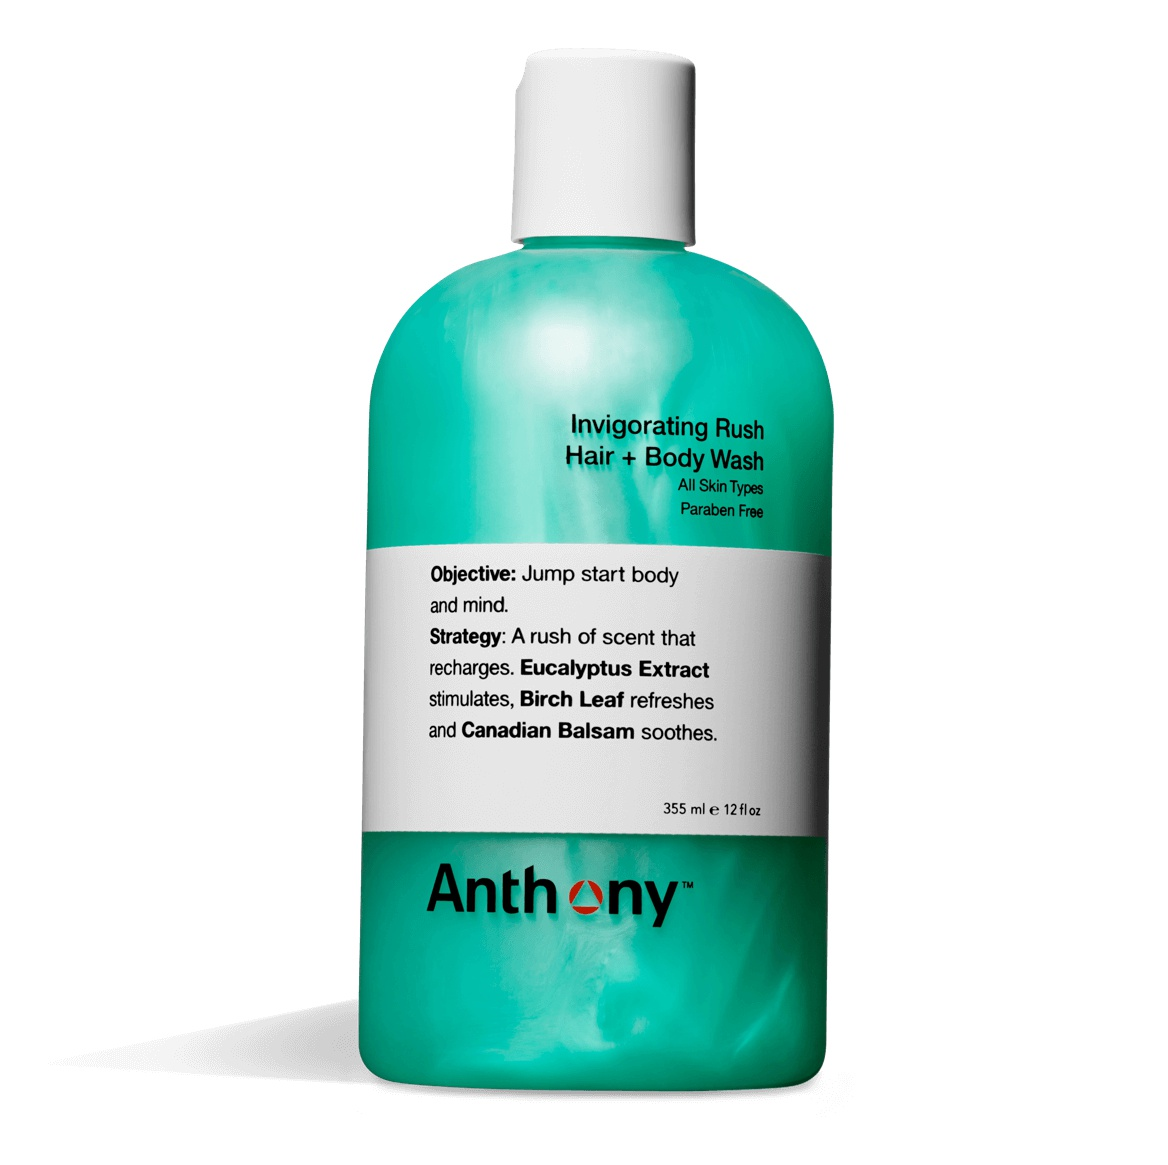 Anthony Invigorating Rush Hair + Body Wash